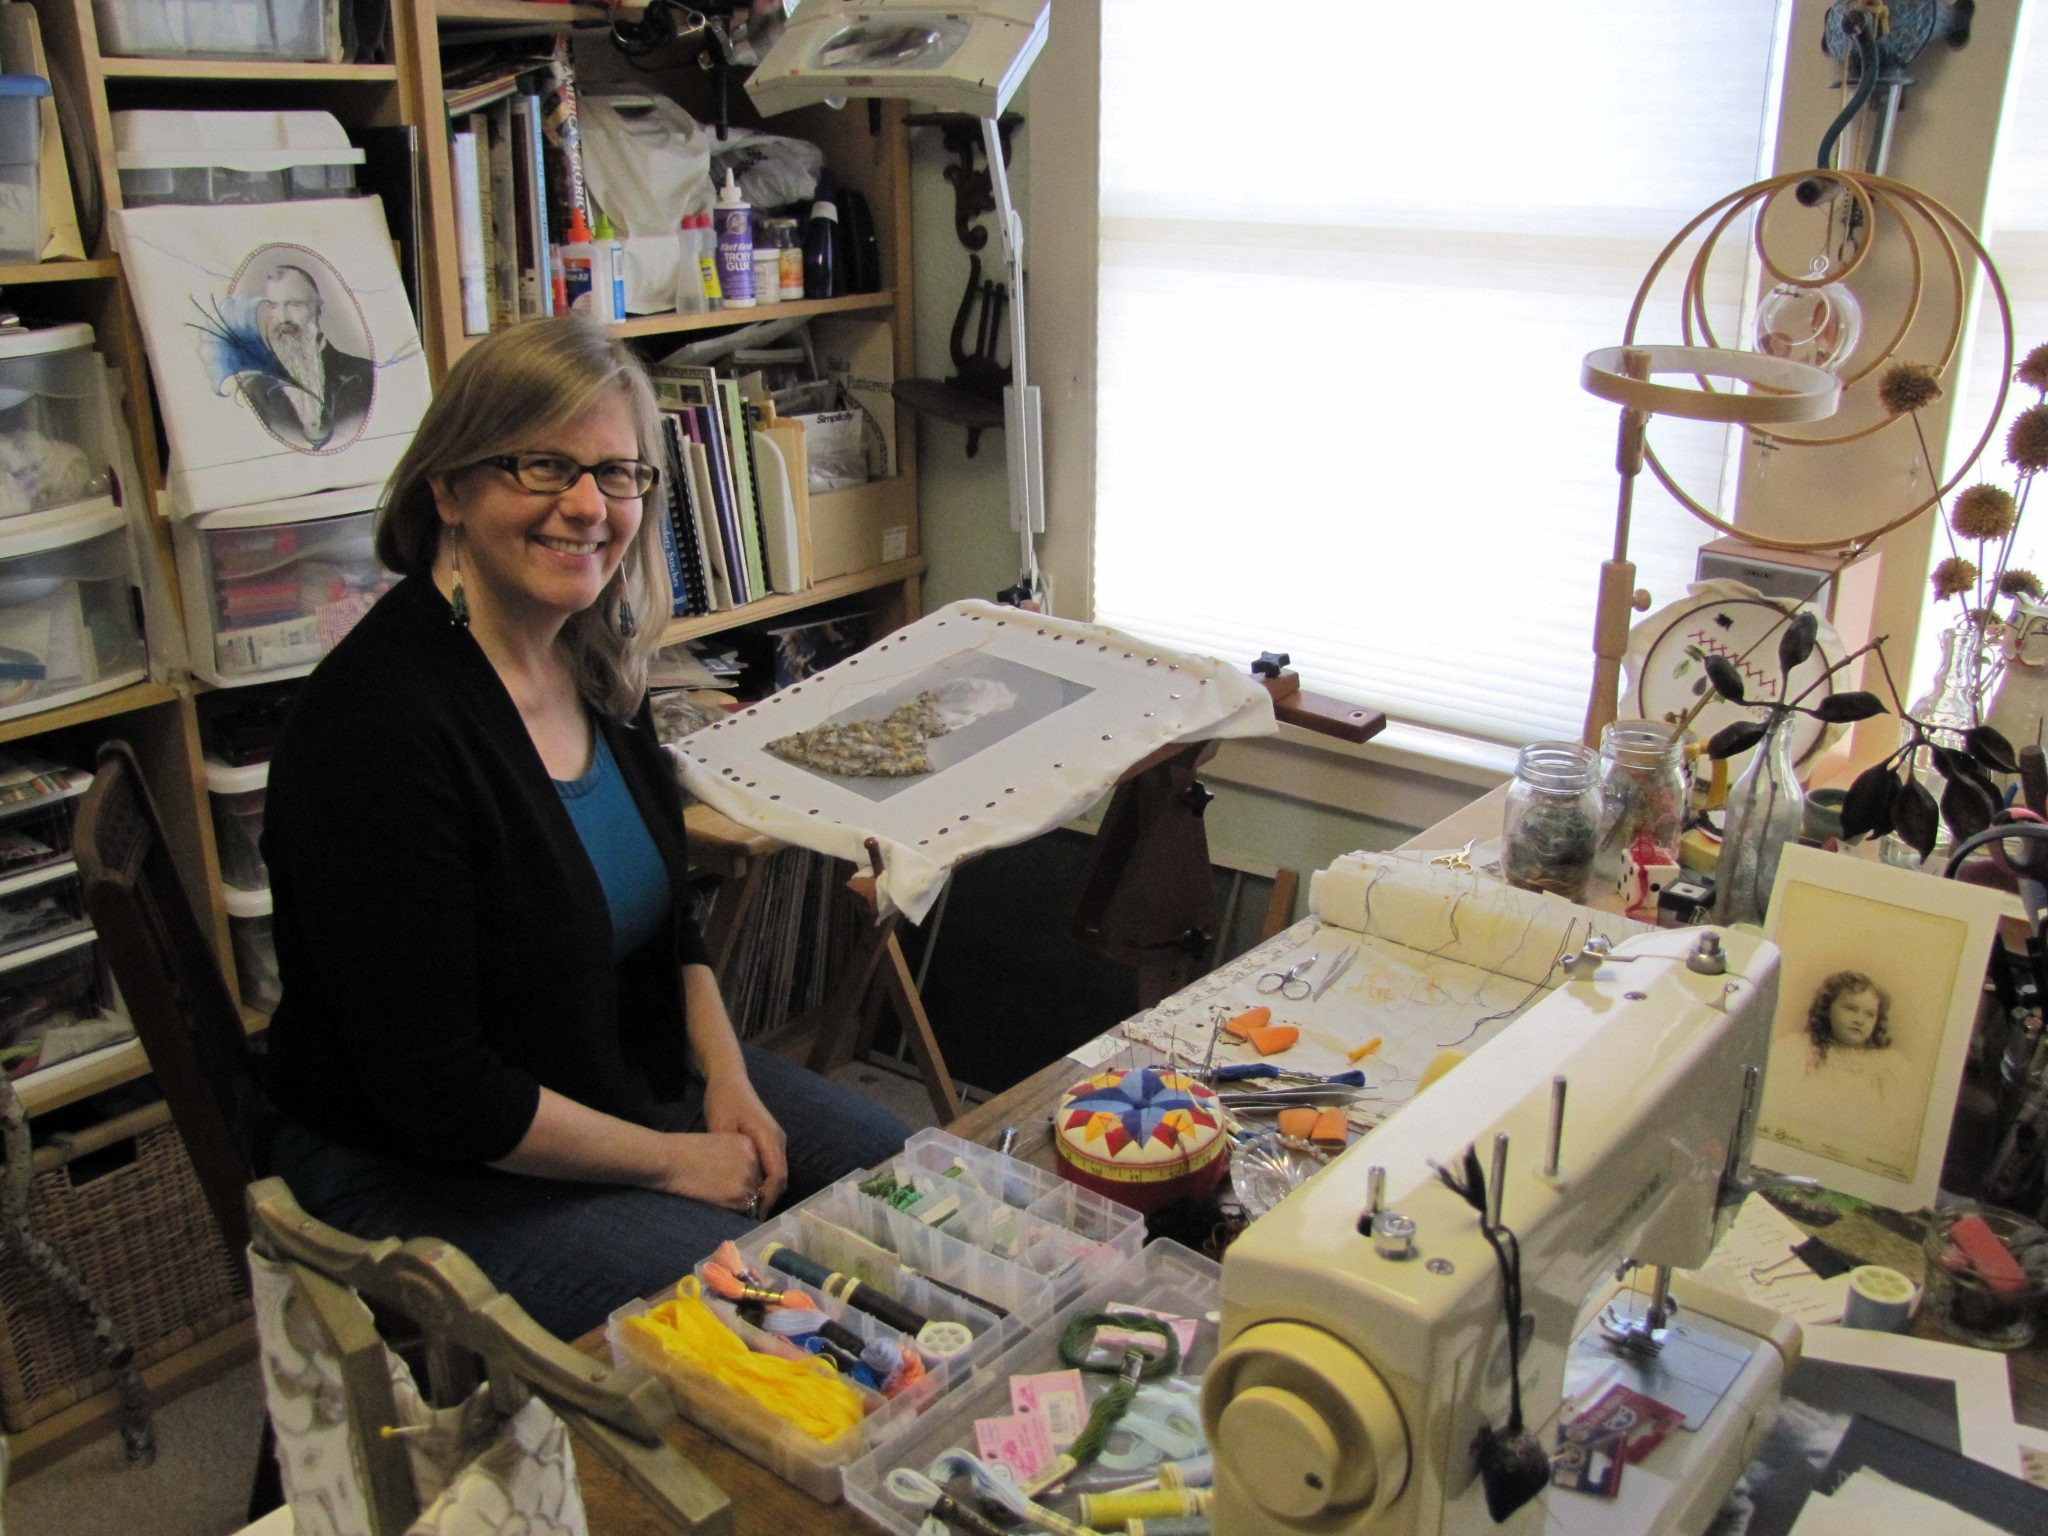 Susan Sharman in her creative space at home in Martinez. (HANNAH HATCH / Martinez Tribune)